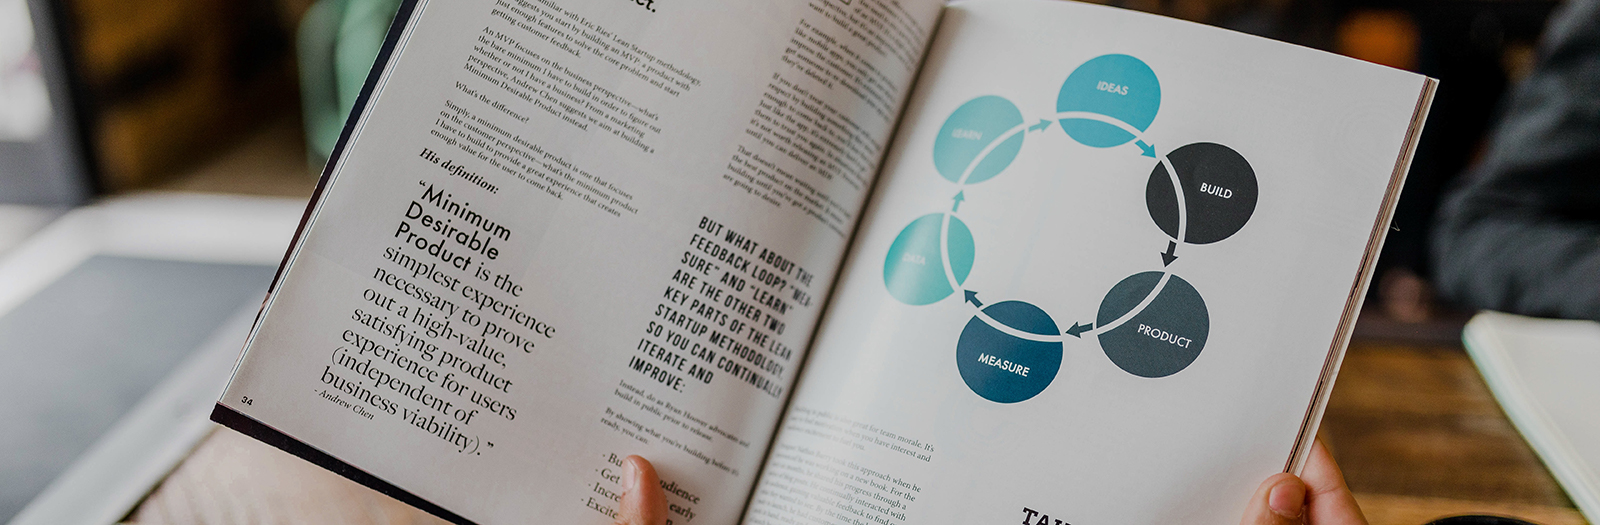 Book with circular graphic